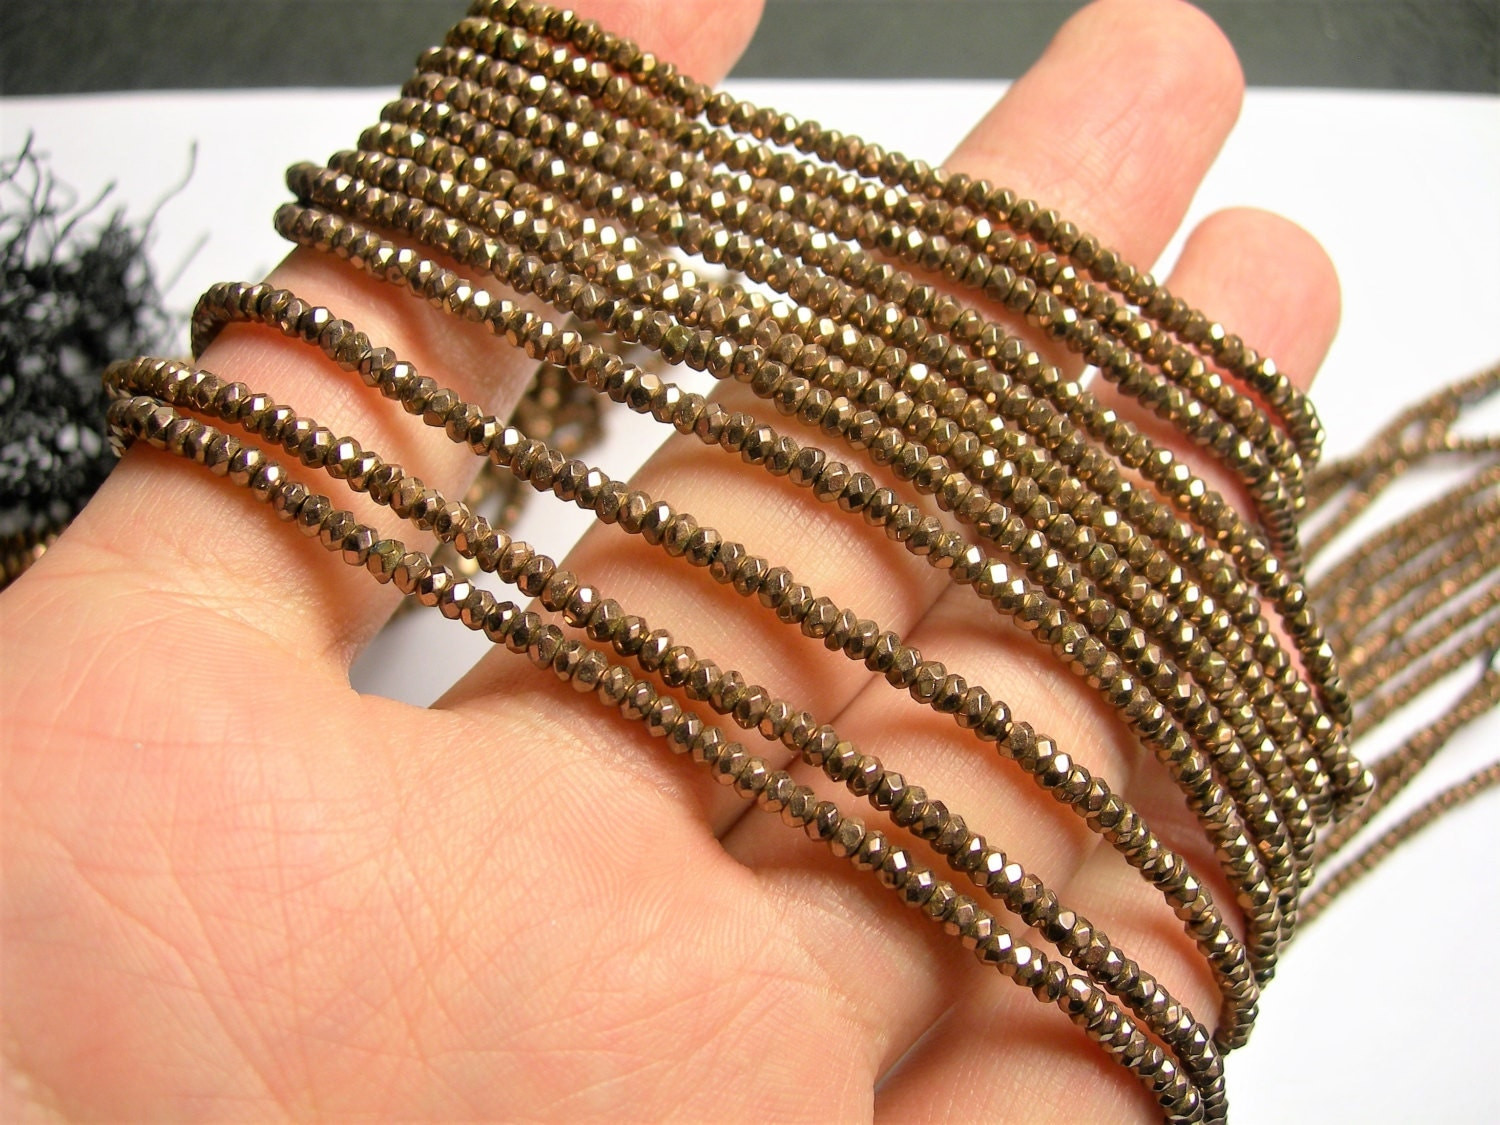 hematite copper bronze faceted rondelle beads full strand 230 beads a. Black Bedroom Furniture Sets. Home Design Ideas